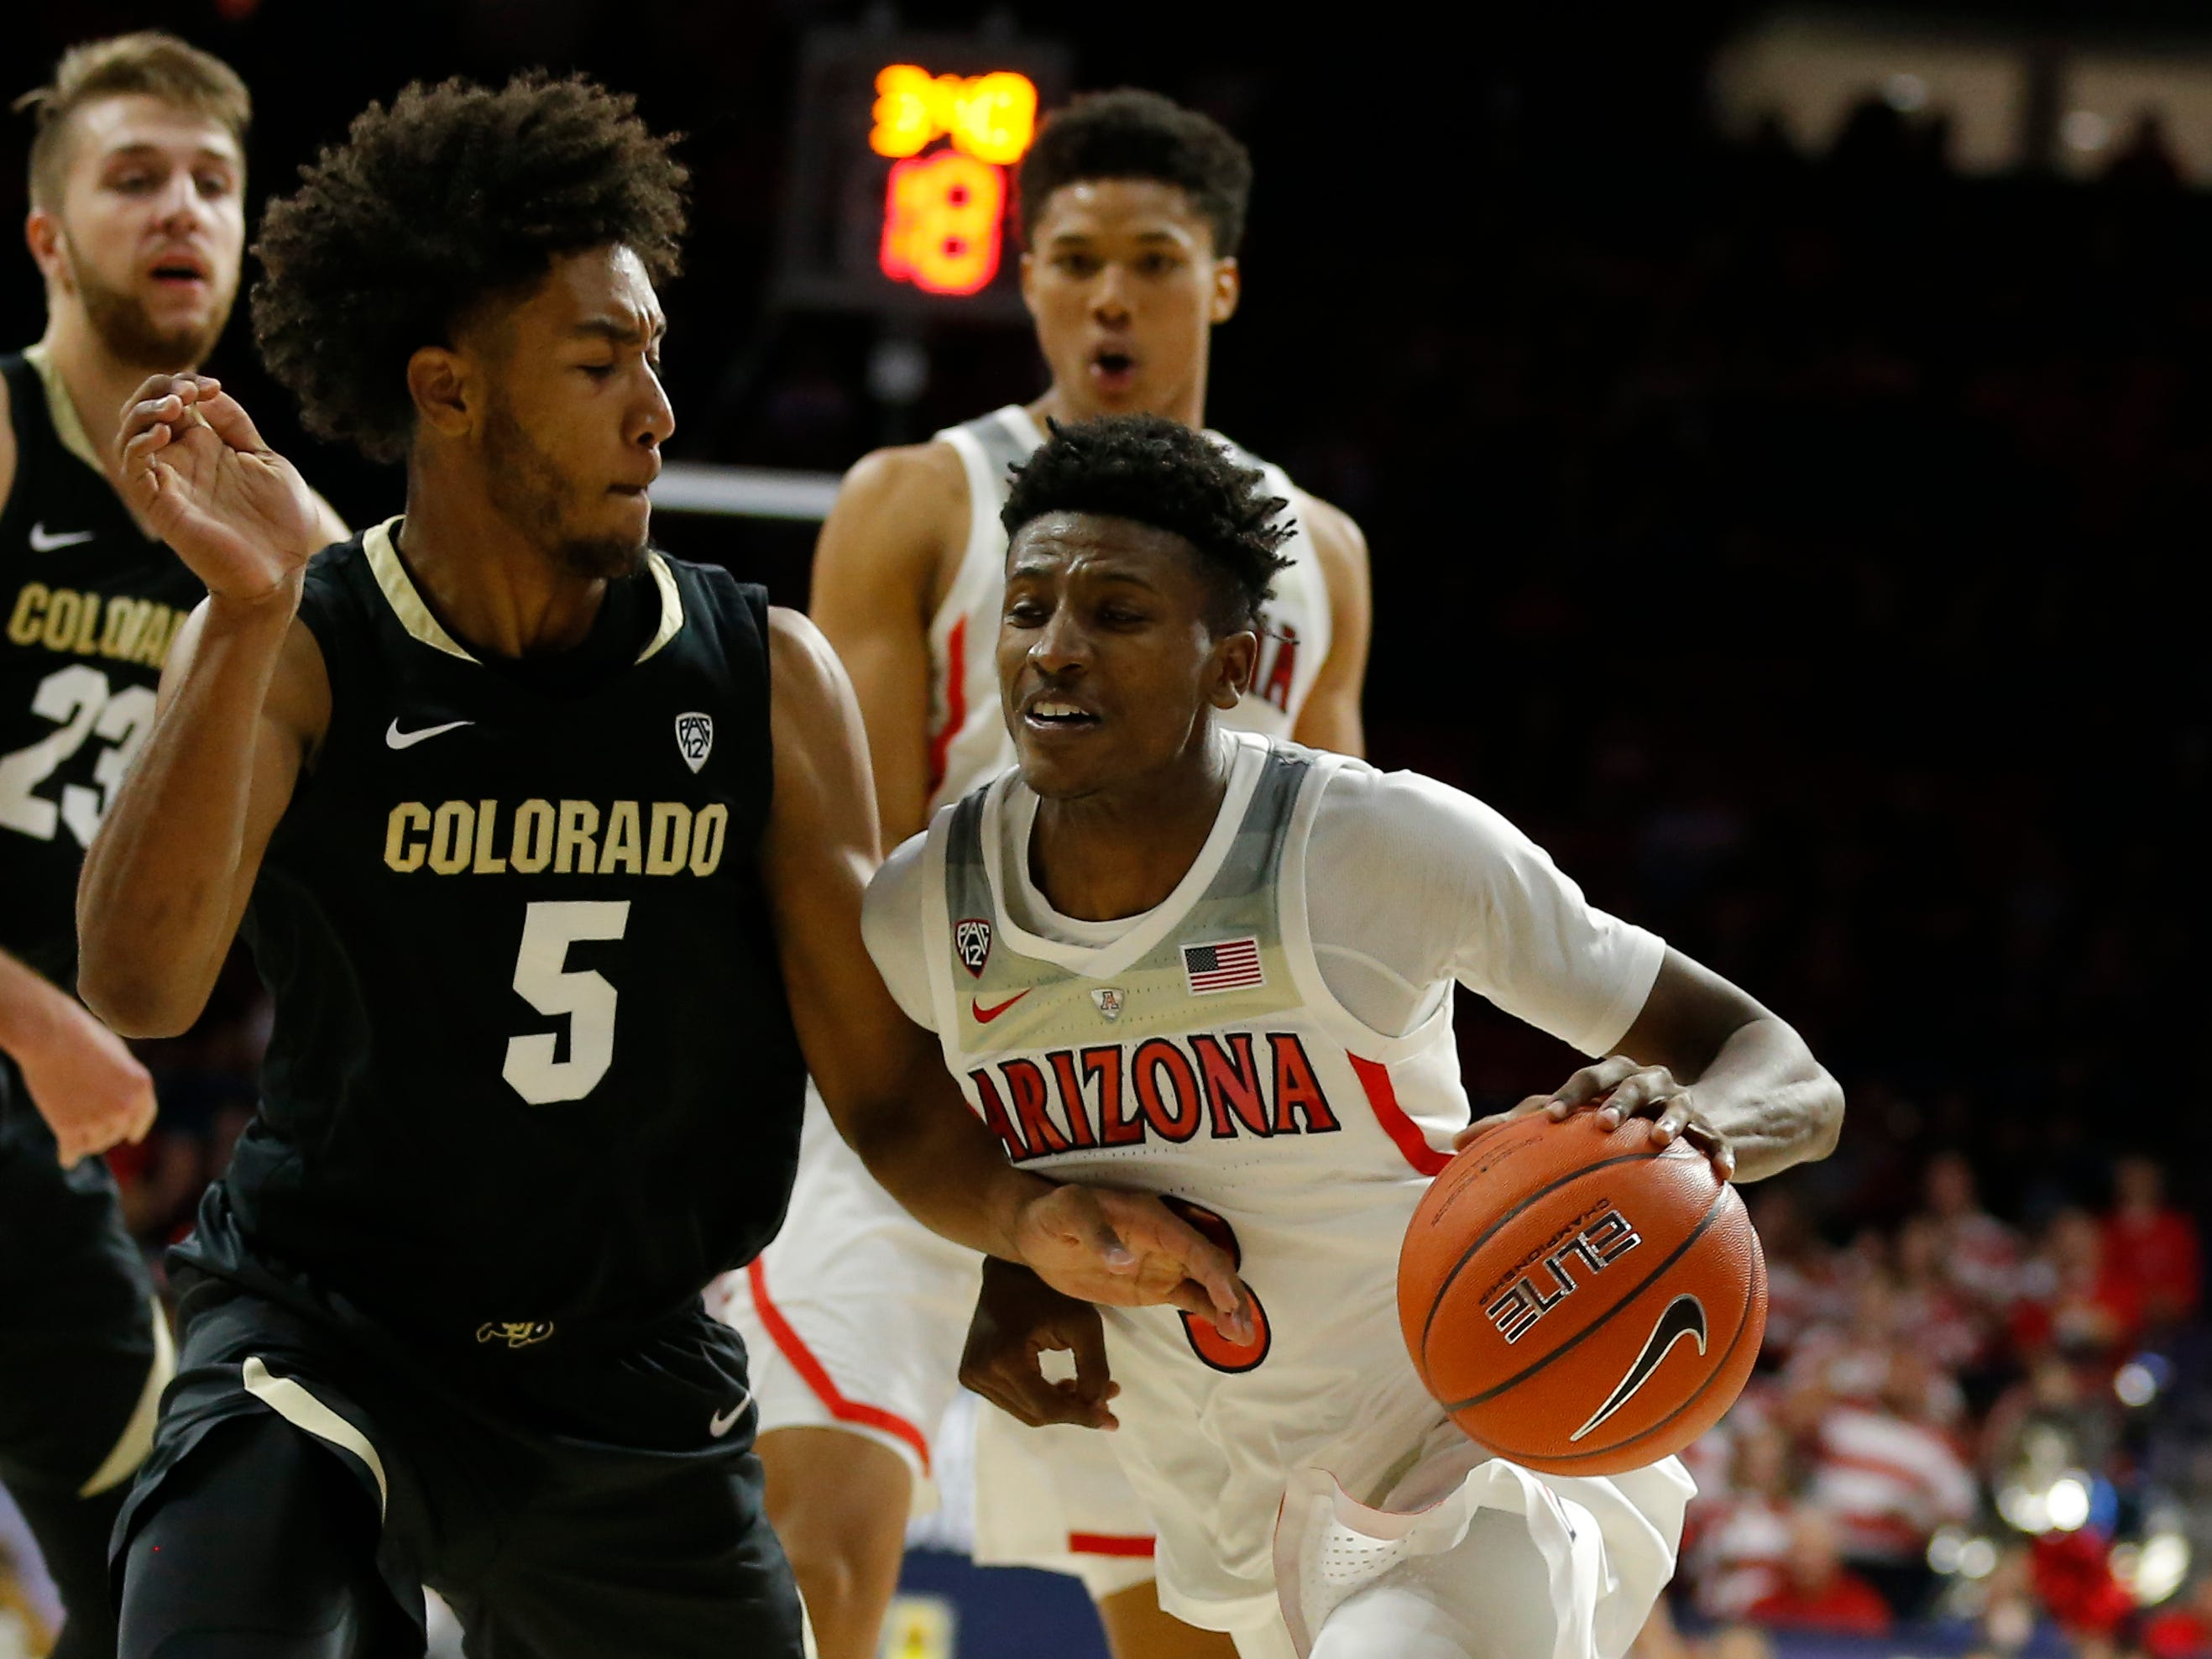 Arizona guard Dylan Smith (3) in the first half during an NCAA college basketball game against Colorado, Thursday, Jan. 3, 2019, in Tucson, Ariz. (AP Photo/Rick Scuteri)